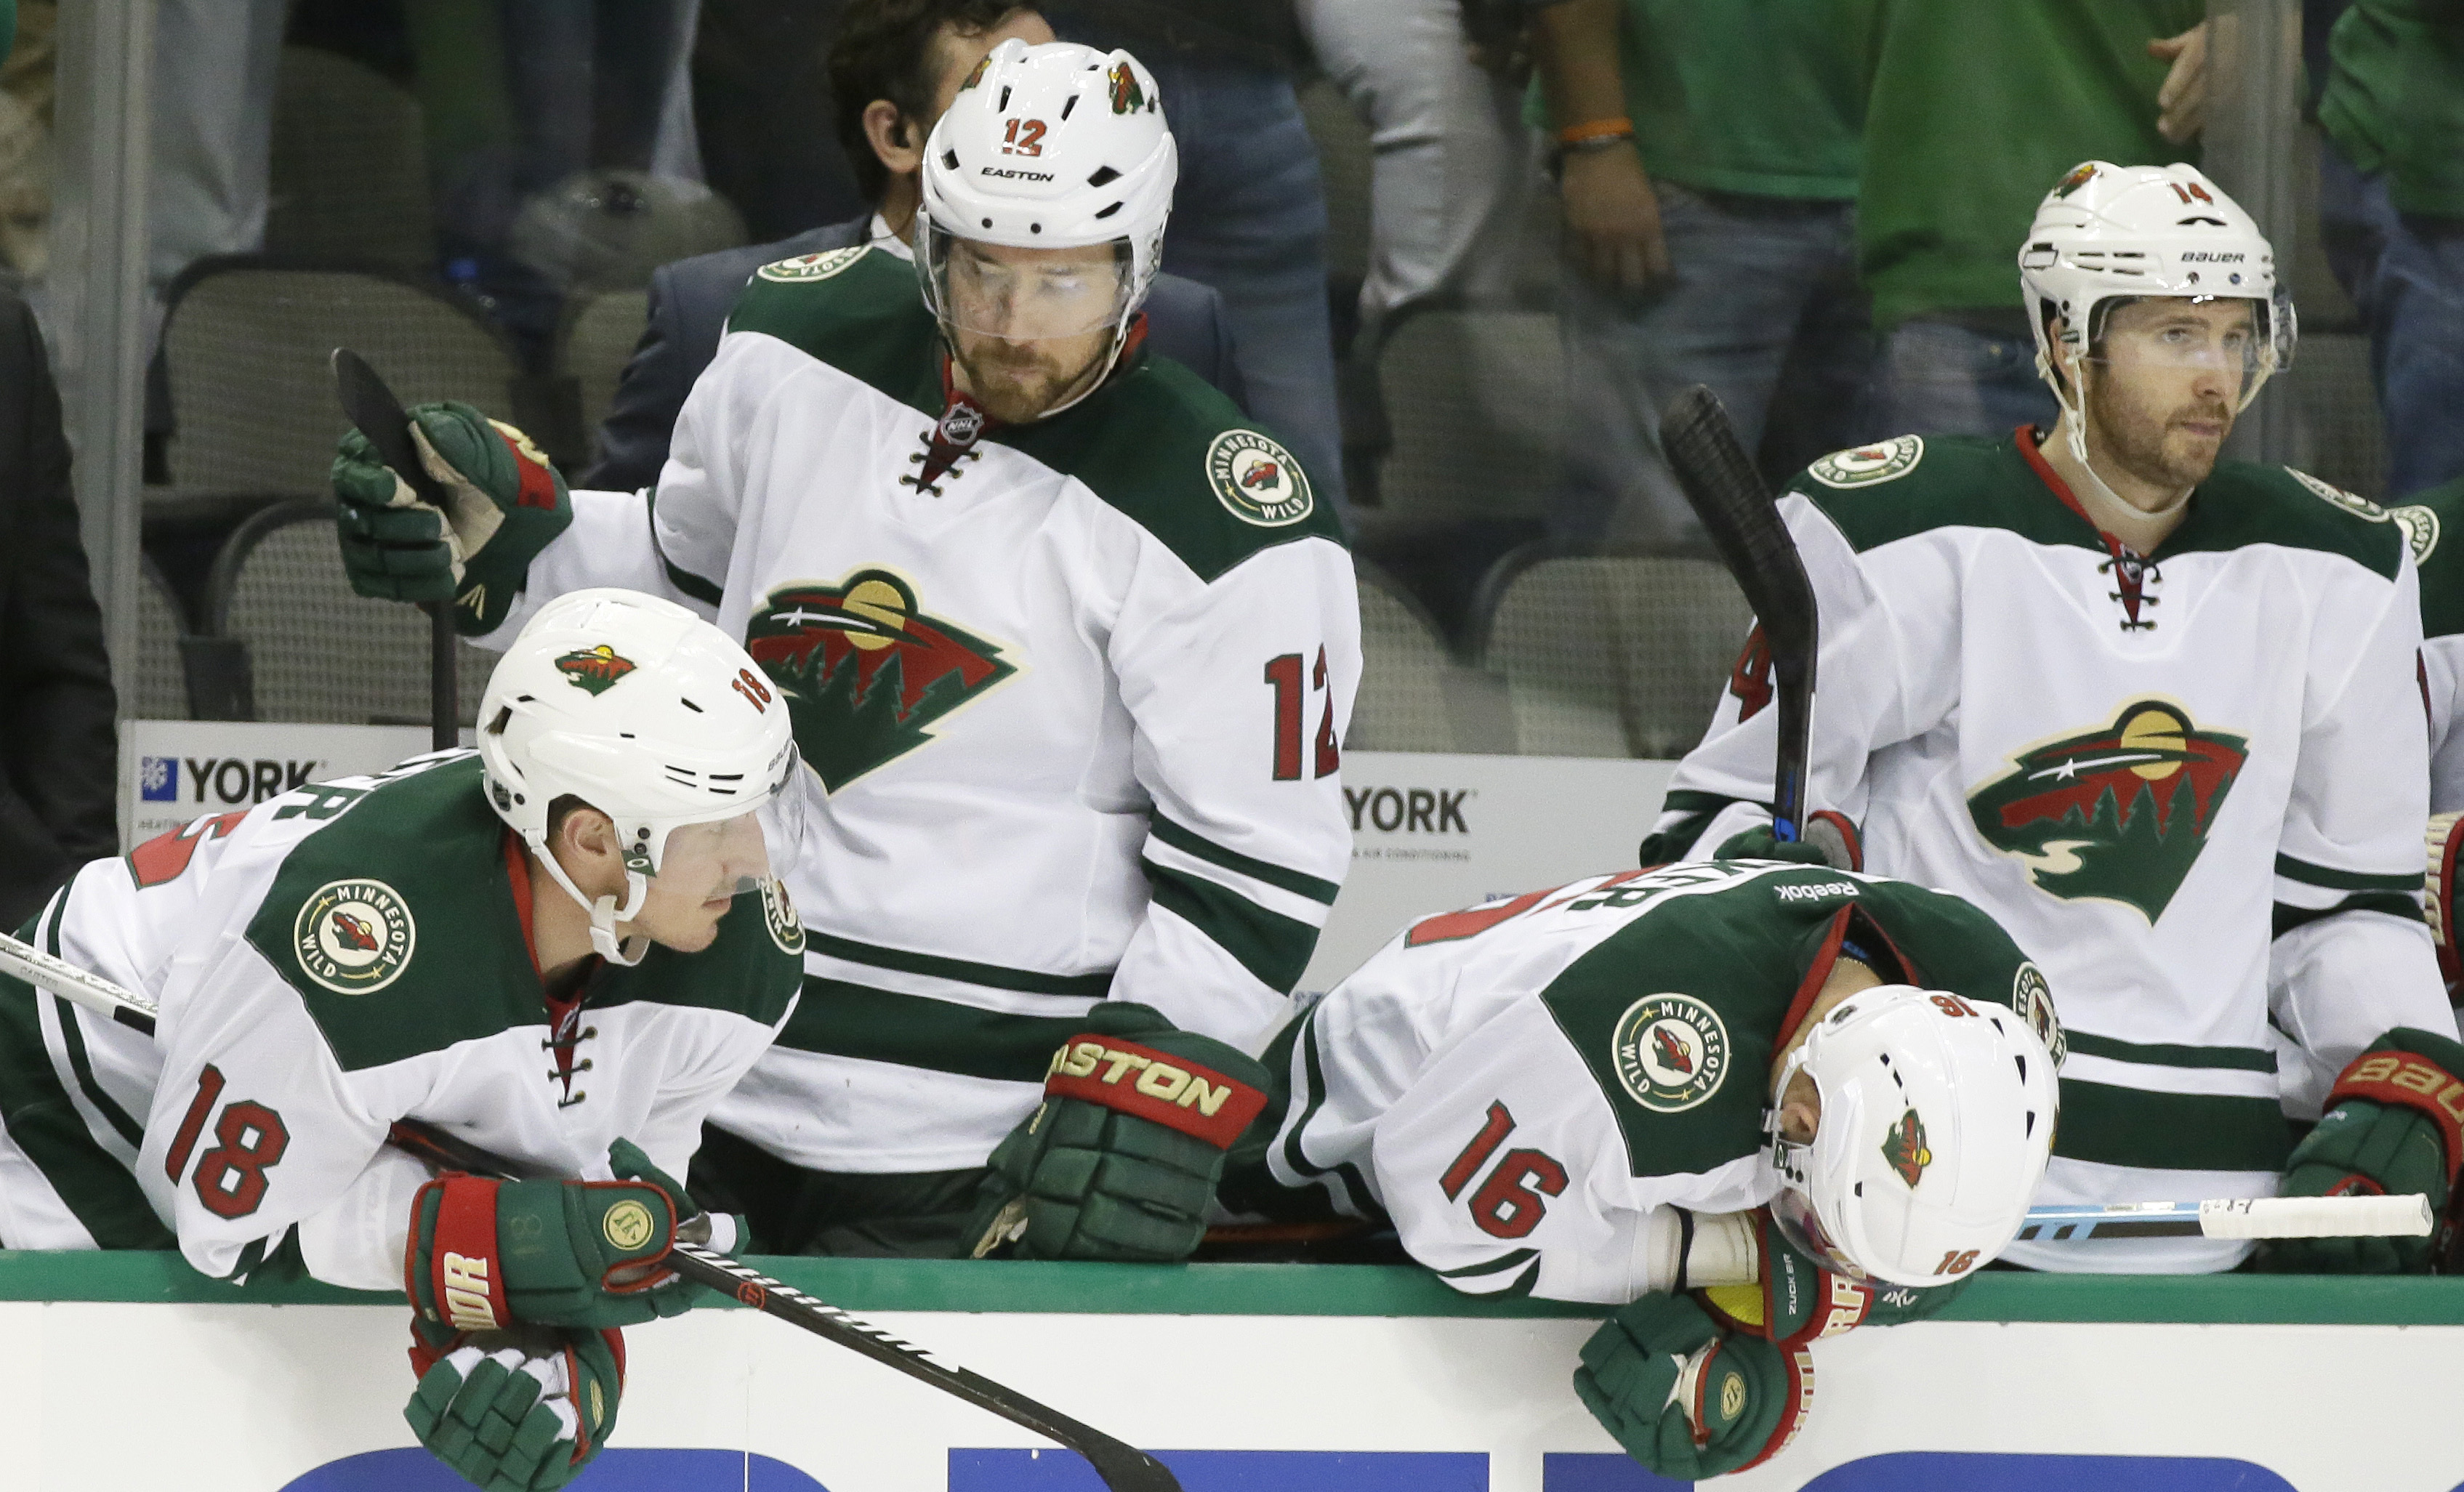 Minnesota Wild Ryan Carter (18), David Jones (12), Jason Zucker (16) and Justin Fontaine (14) react on the bench after  the the third period in Game 2 in the first round of the NHL Stanley Cup playoffs against the Dallas Stars, Saturday, April 16, 2016, i